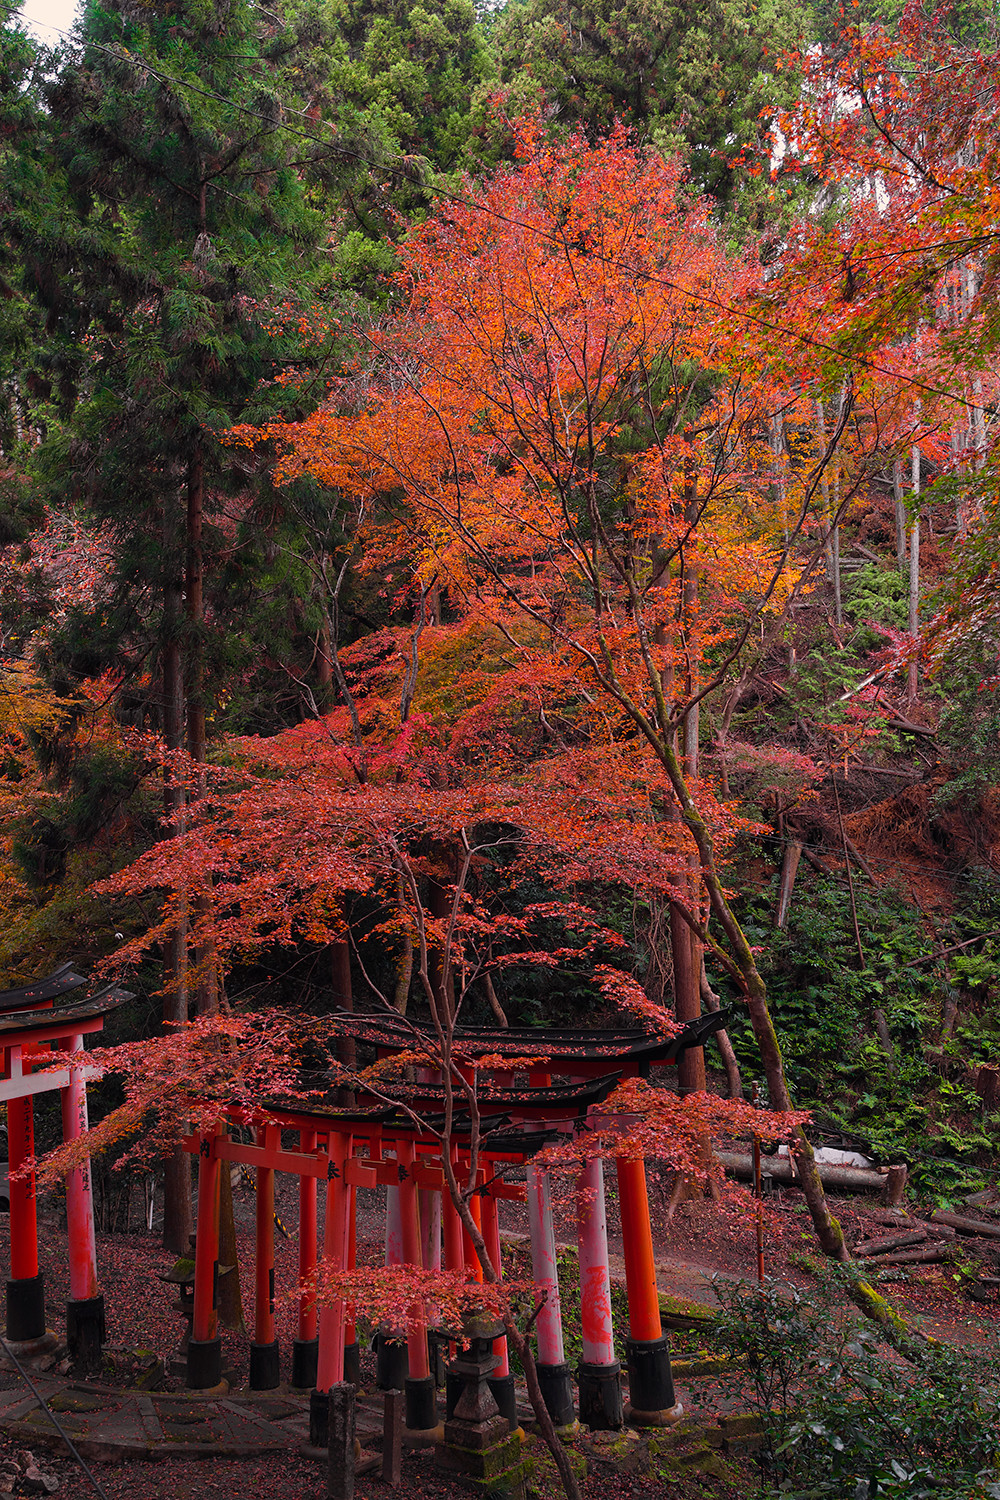 32kyoto-fushimi-inari-torii-shrine-architecture-landscape-japan-travel